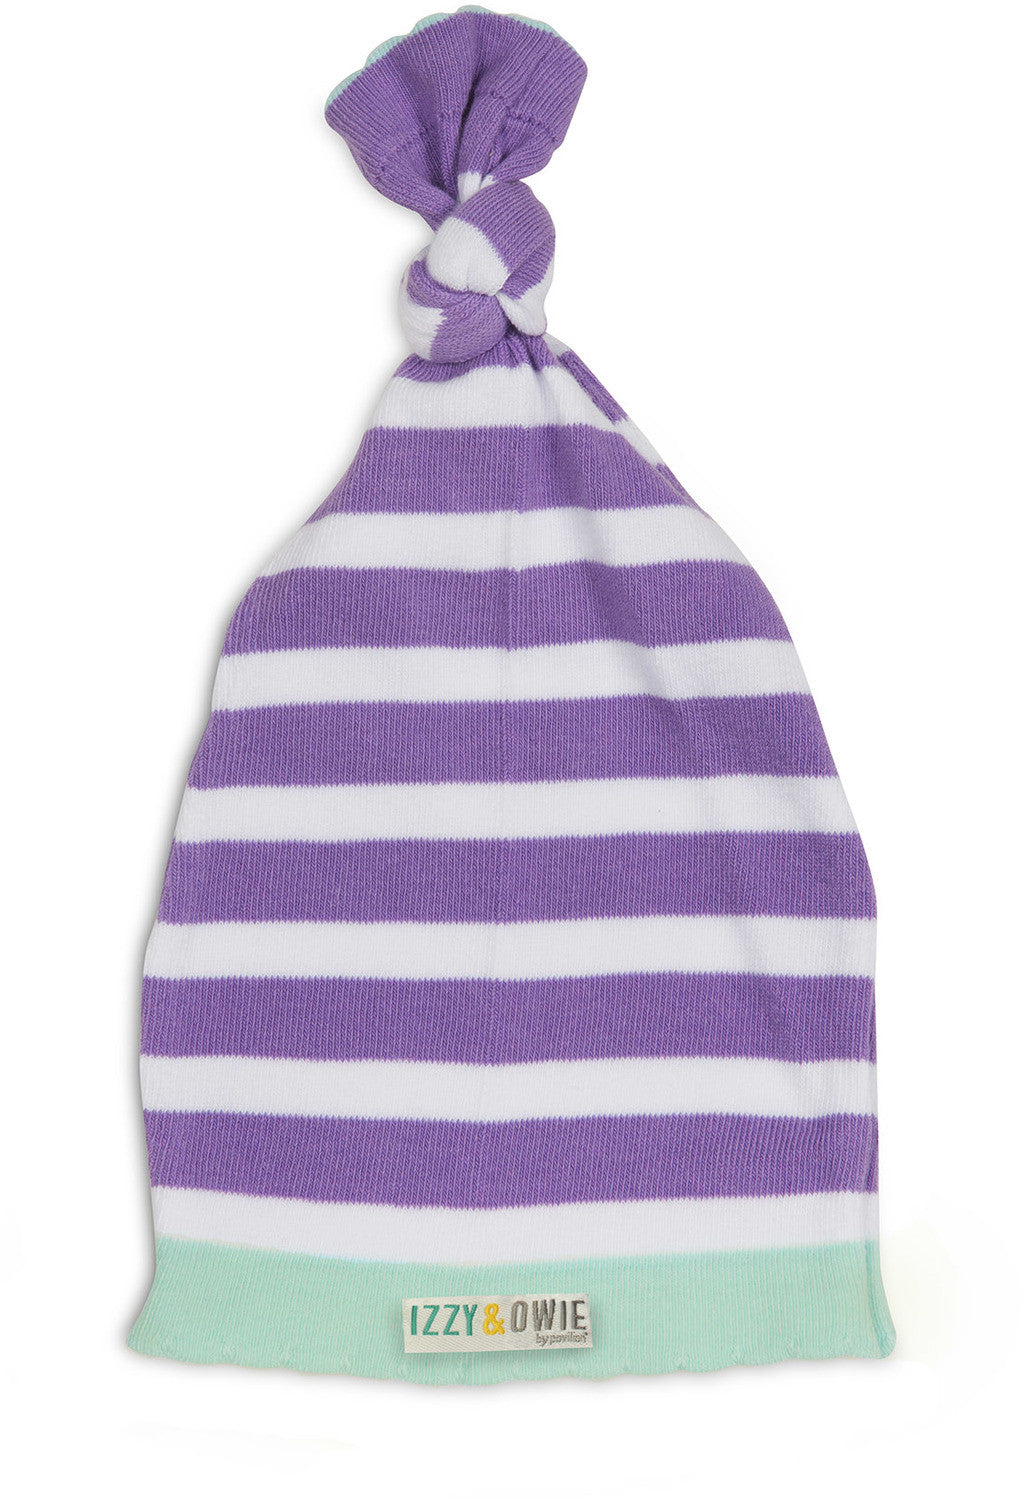 Blue and Lavender Stripe Hat Baby Hat Izzy & Owie - GigglesGear.com